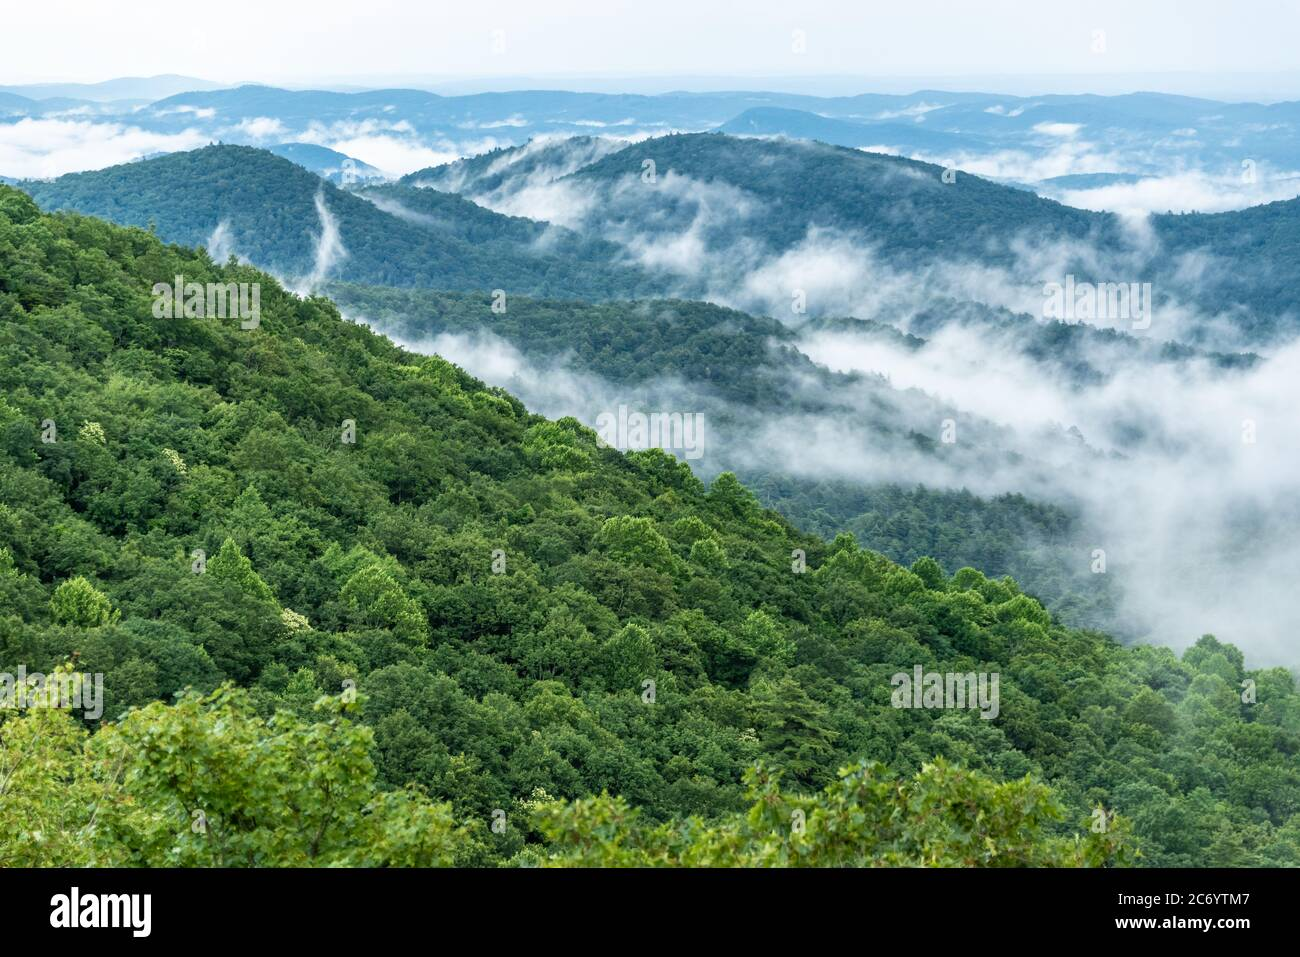 Blue Ridge Mountains scenic landscape of low-lying clouds drifting and climbing through mountain valleys in the North Georgia Mountains. (USA) Stock Photo